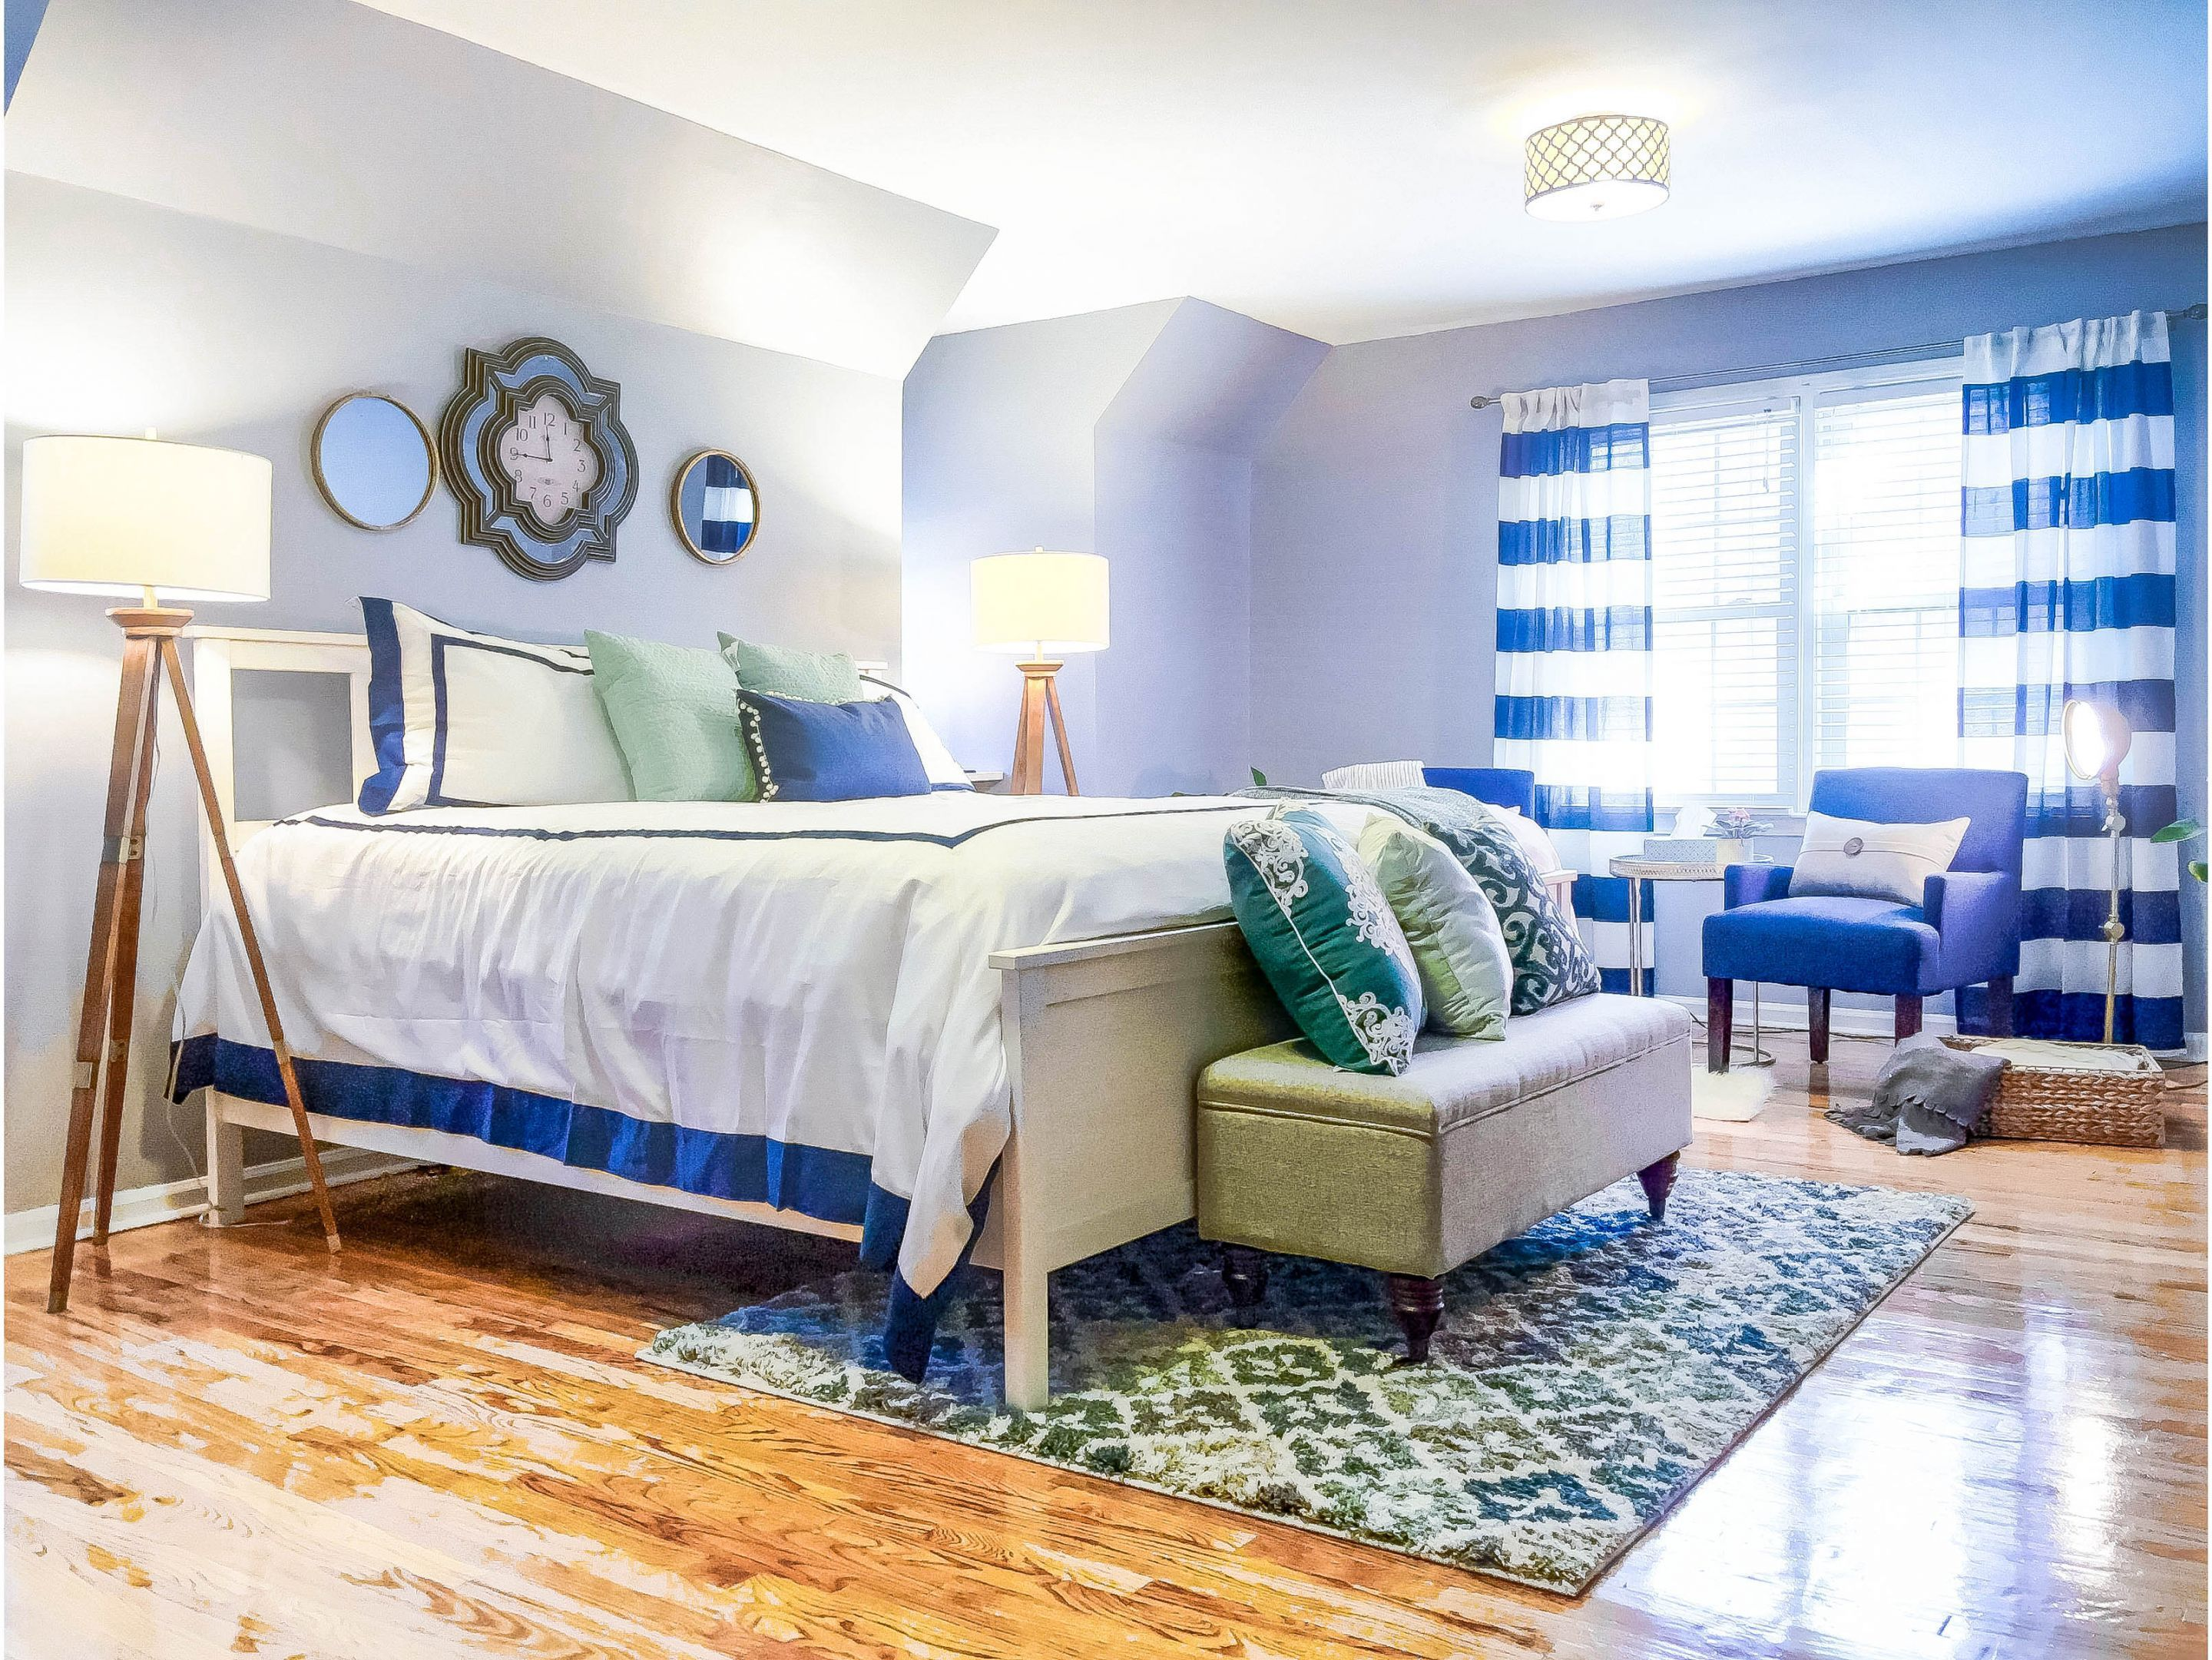 designing on a dime : before and after master bedroom tour